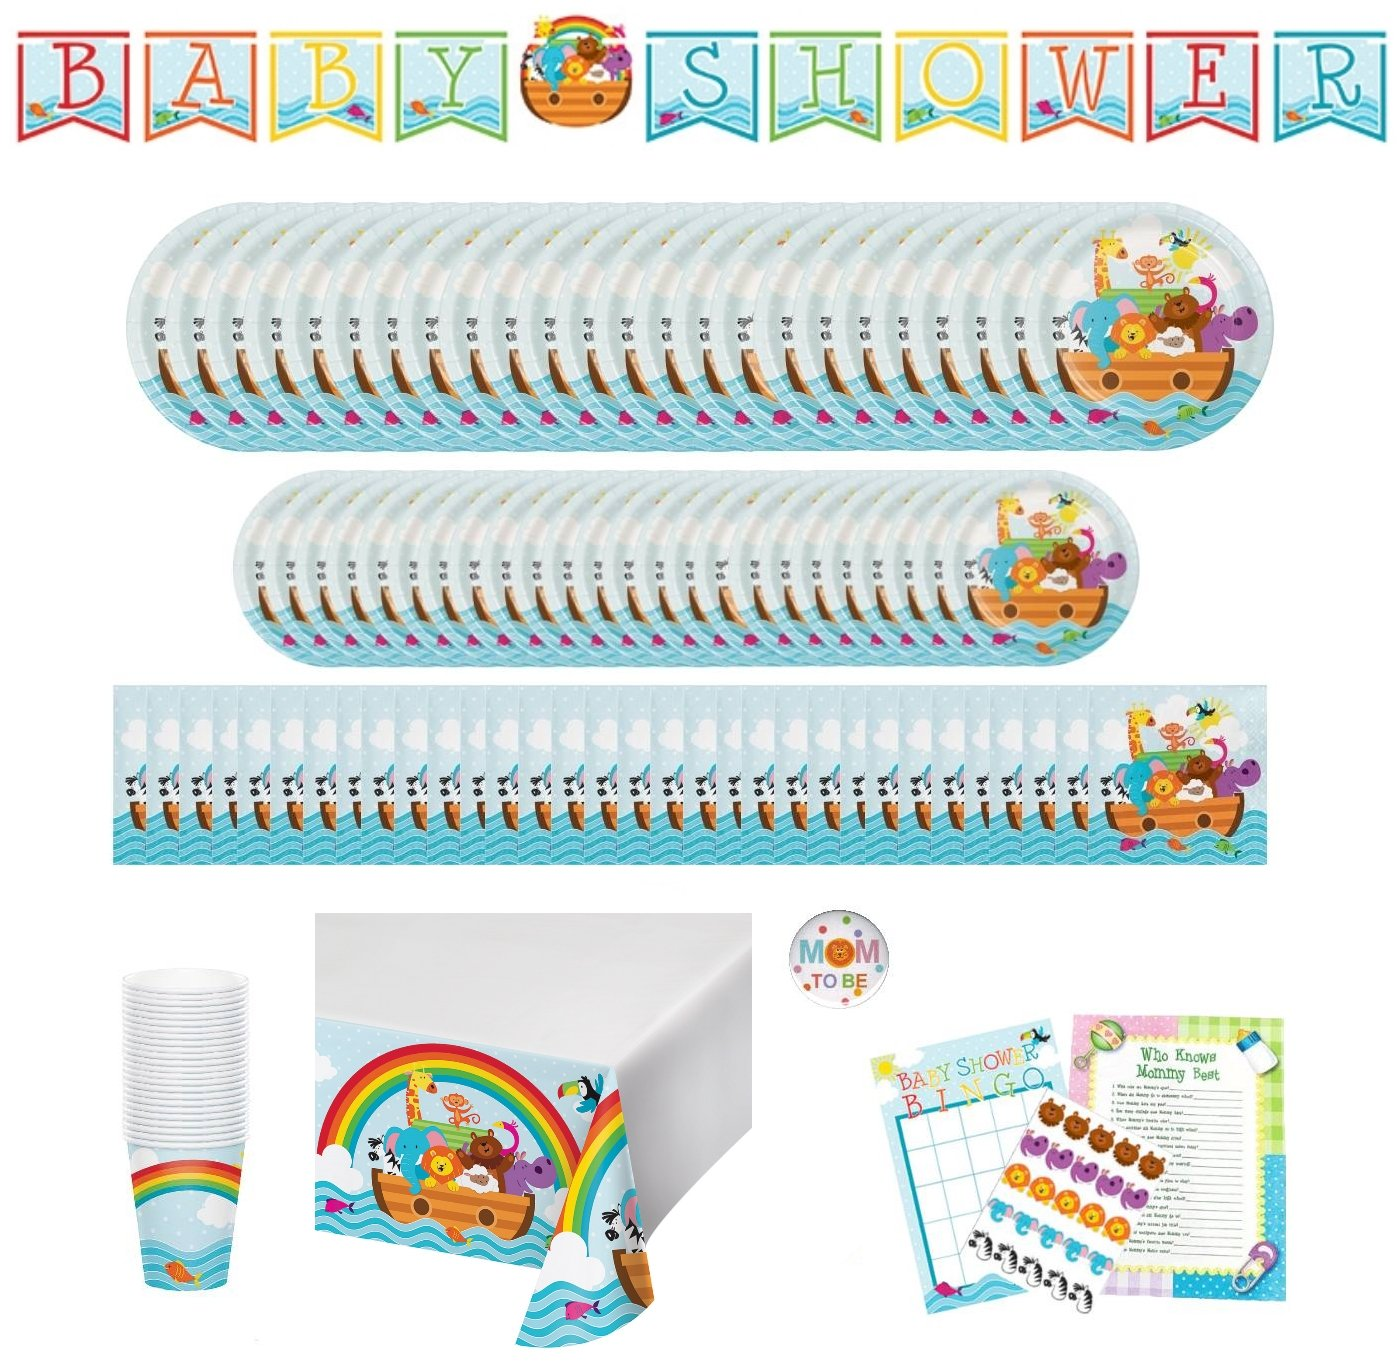 Noahs Ark Baby Shower Party Supplies: Paper Plates, Napkins, Cups, Tablecloth, Banner and Games Bundle for 24 Guests by Creative Converting, Oriental Trading, Whymsical Doodles